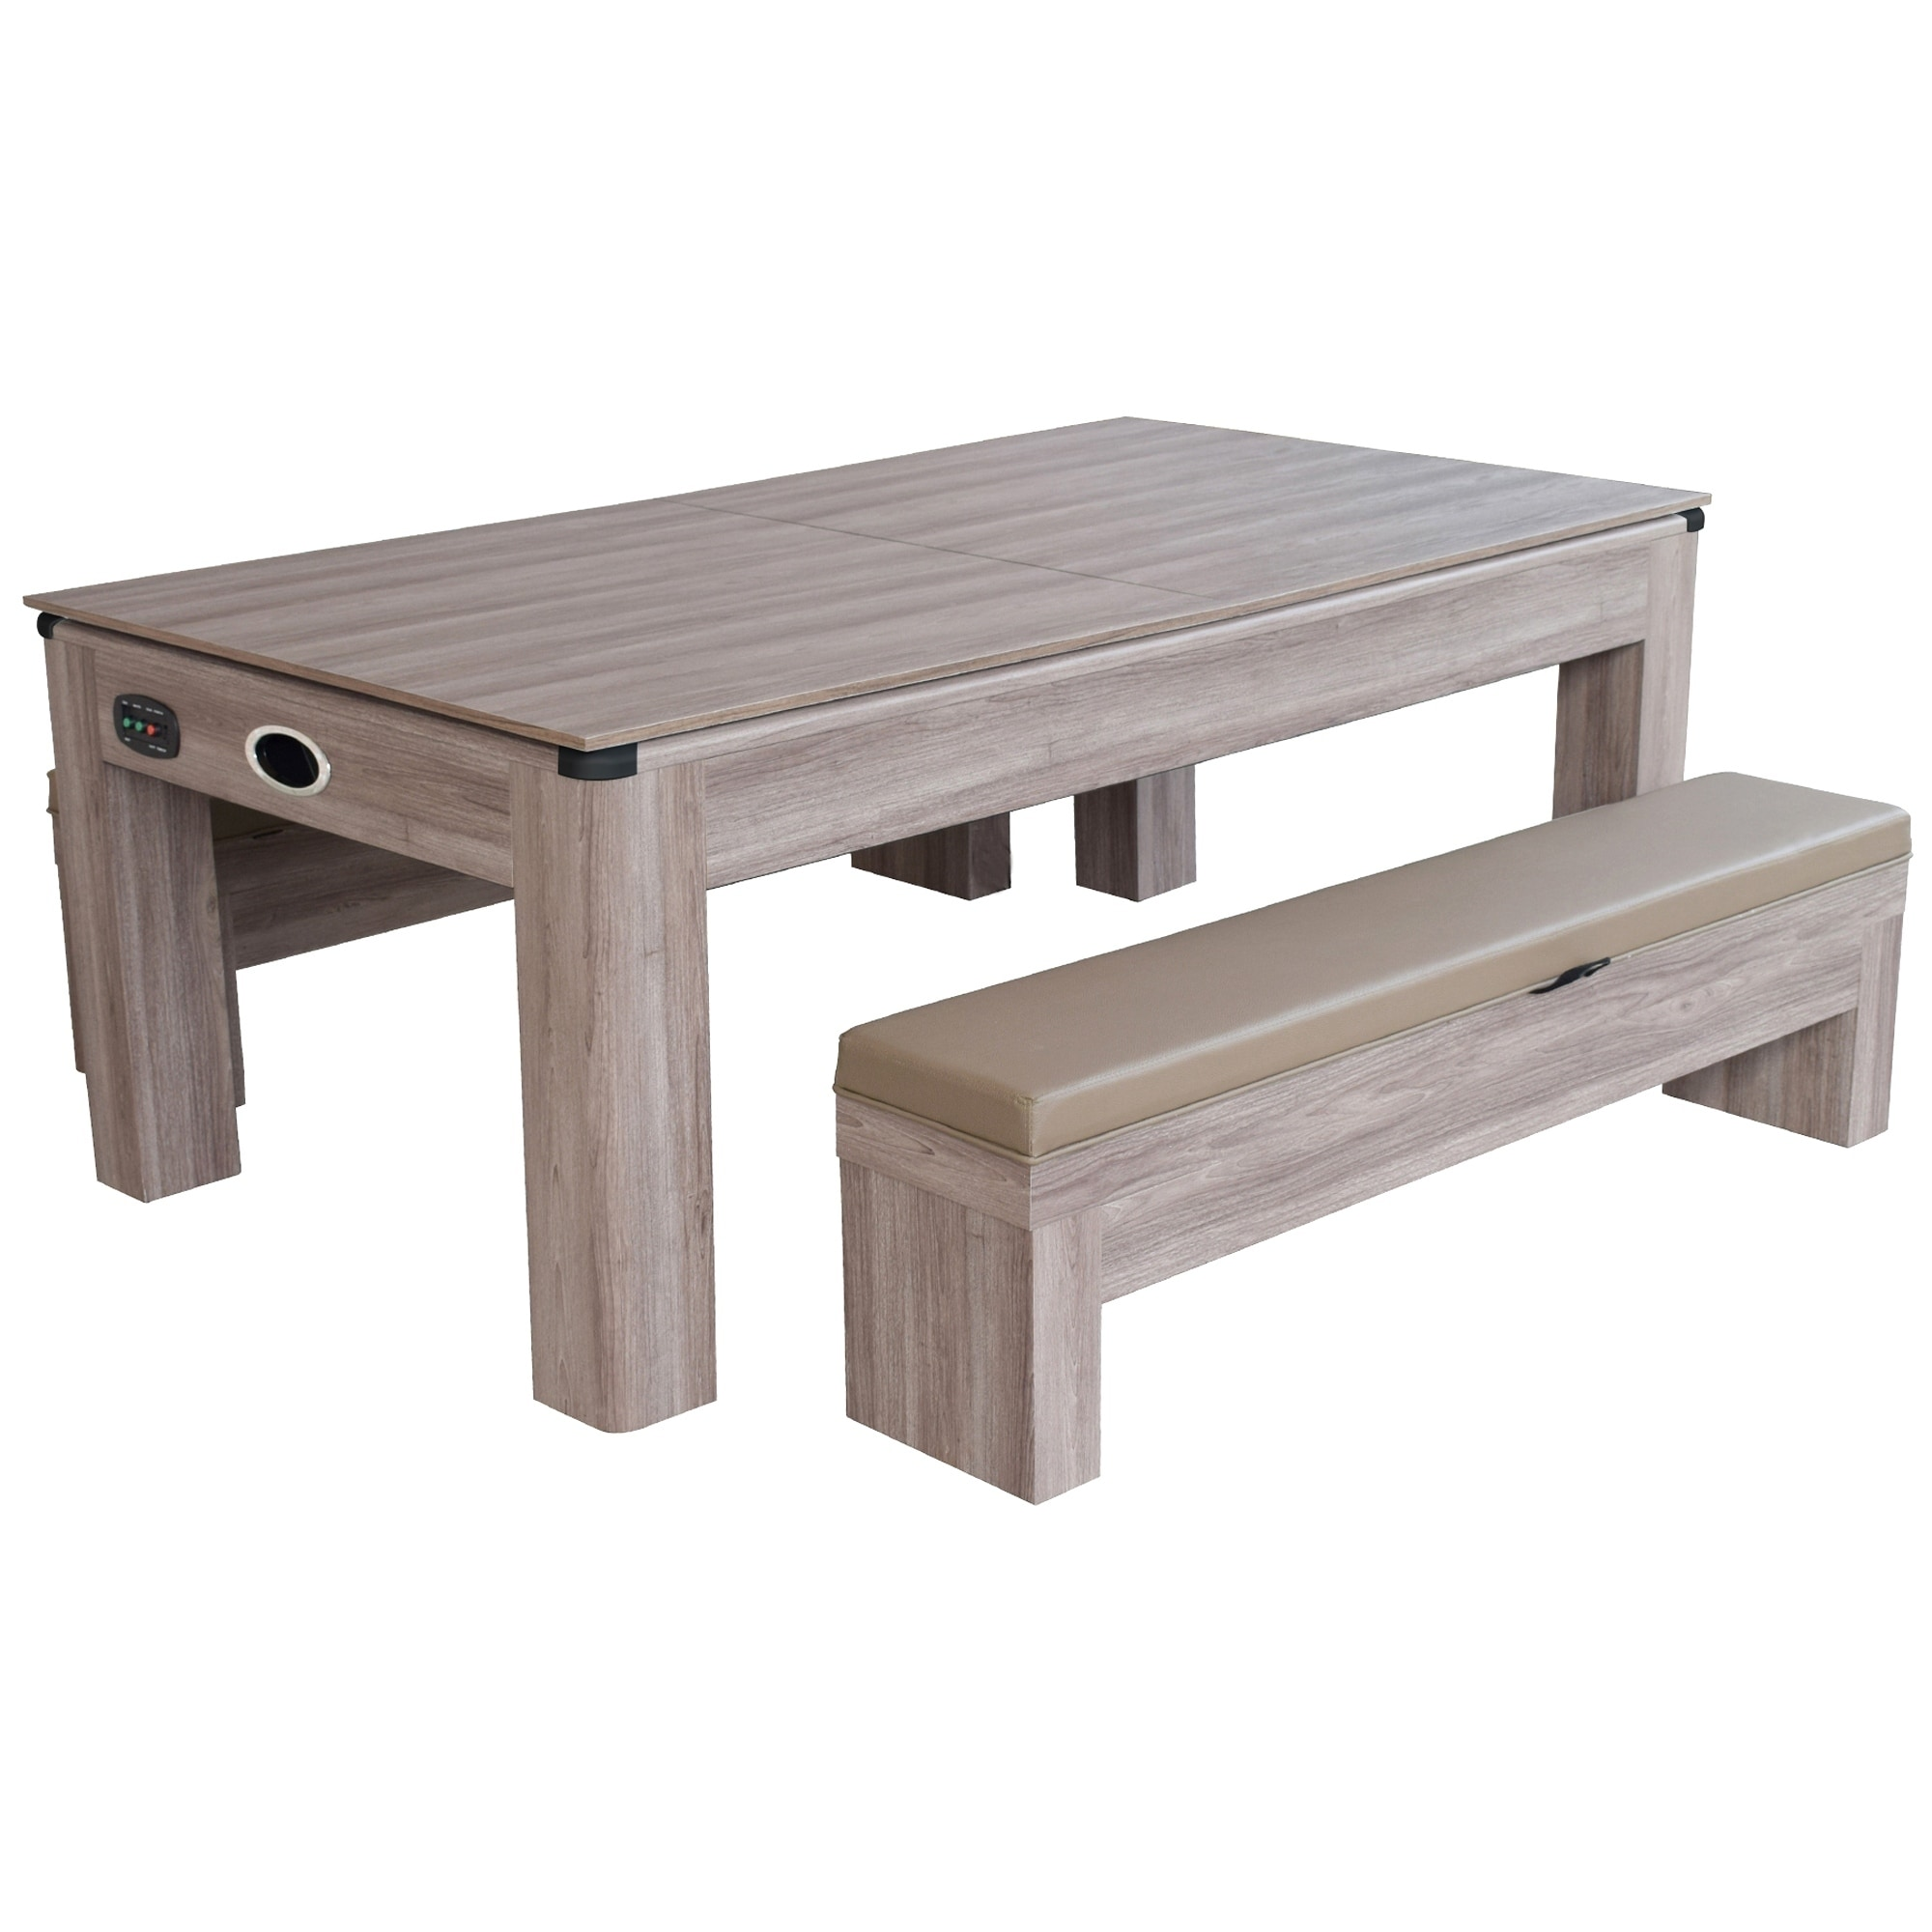 Shop Driftwood 7 Ft Combo Game Table Set W/Benches   Free Shipping Today    Overstock.com   17910208